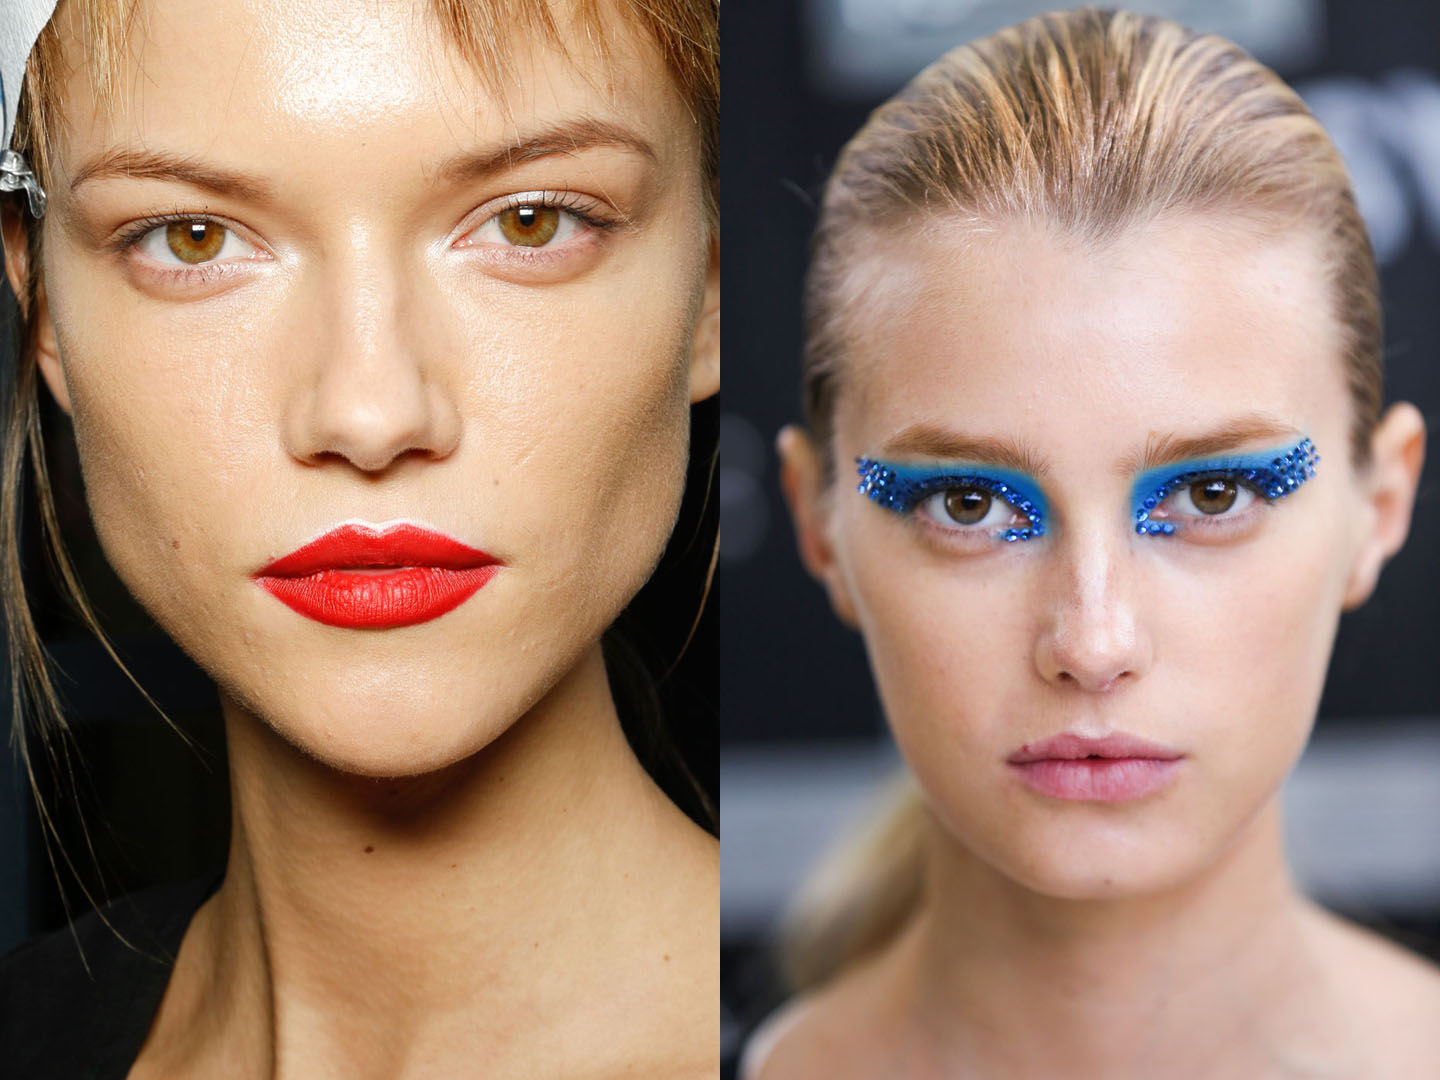 mcgrathtipsphoto 5 Tips From Pat McGrath on How to Wear the Latest Beauty Trends